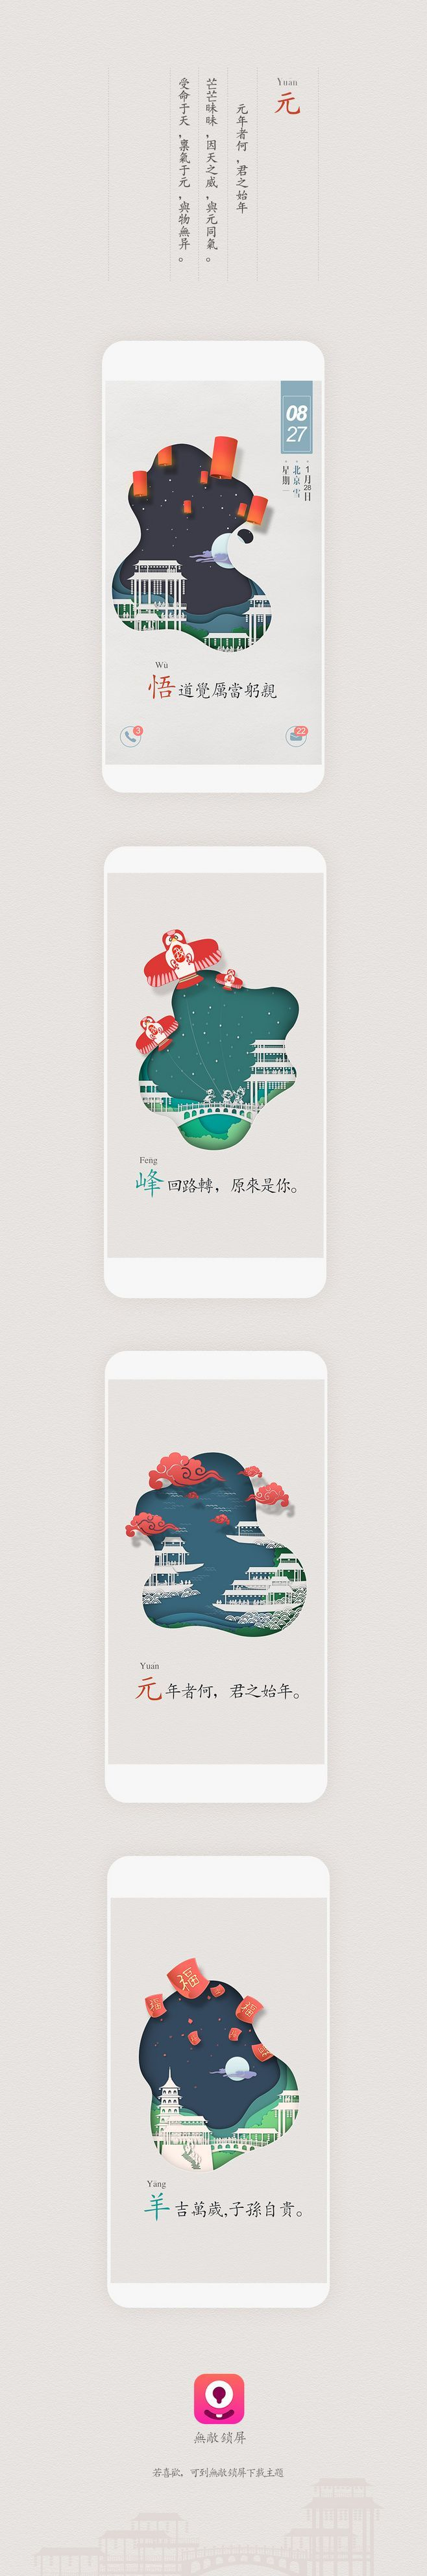 New Year greeting | Mobile / APP interface | GUI | ... @ UI Designer - Zhou Xiaofeng collected app works Packaging & Products (2766 figure) _ petals UI / UX